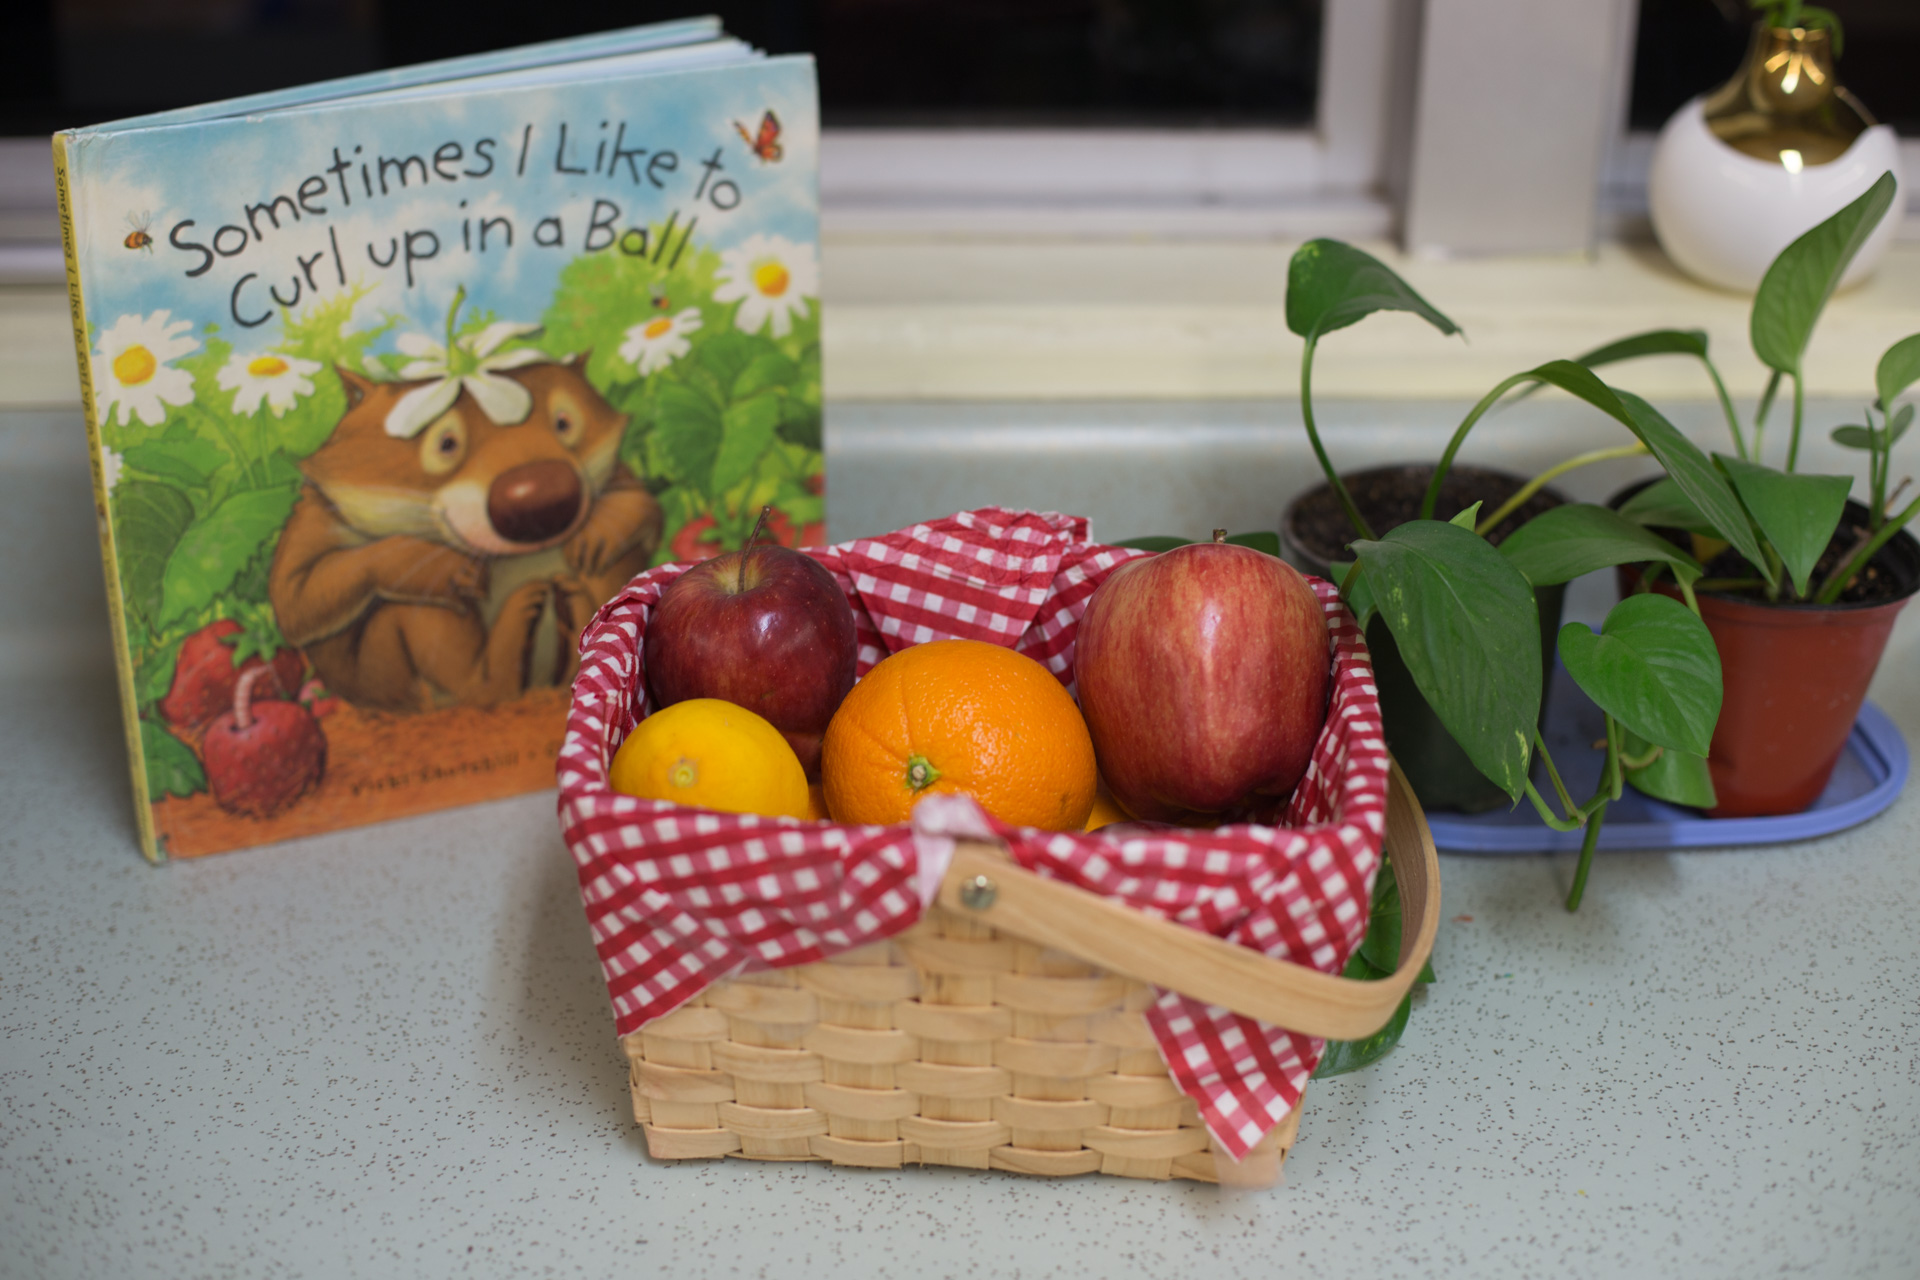 Book and fruits